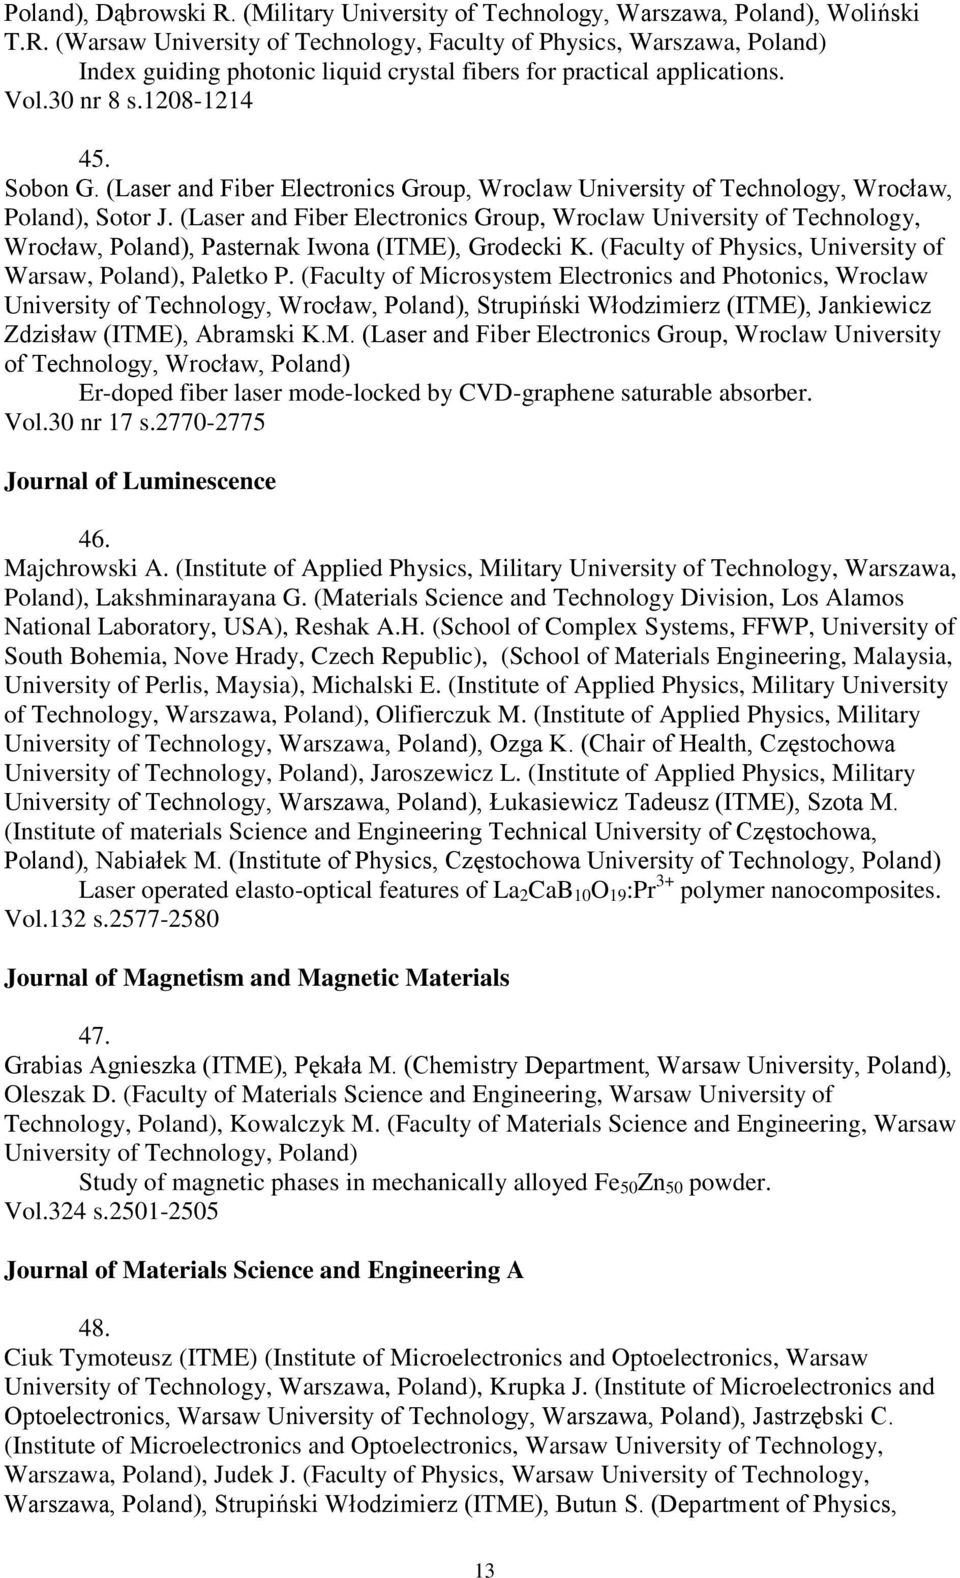 (Laser and Fiber Electronics Group, Wroclaw University of Technology, Wrocław, Poland), Pasternak Iwona (ITME), Grodecki K. (Faculty of Physics, University of Warsaw, Poland), Paletko P.